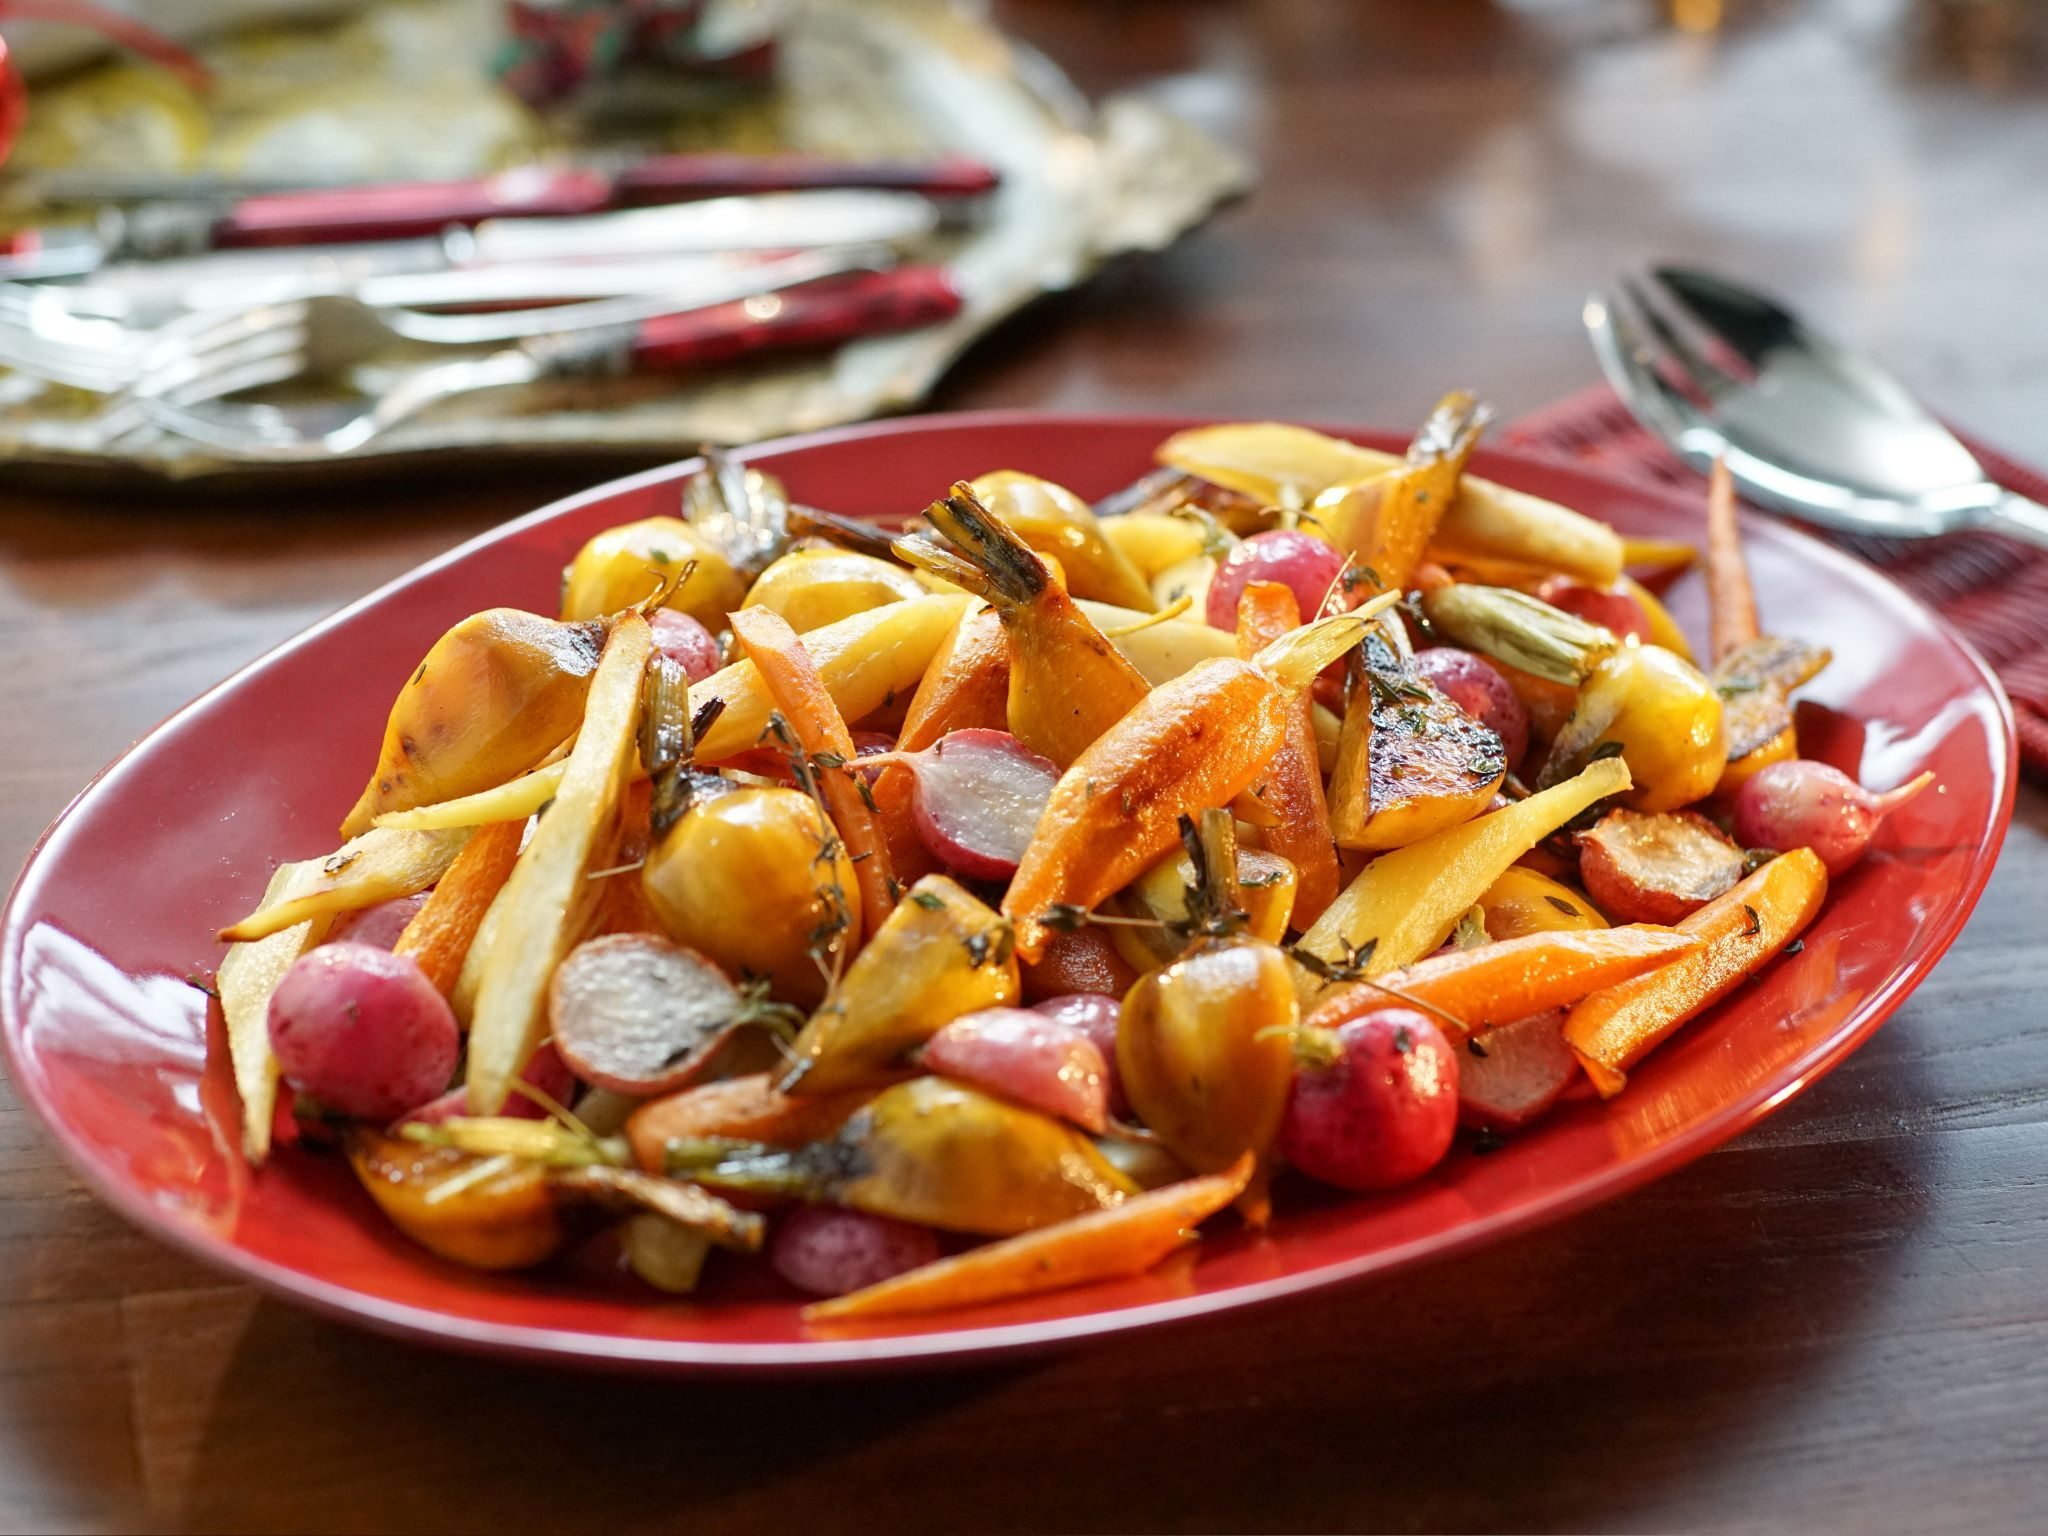 home food network recipes - 616×462